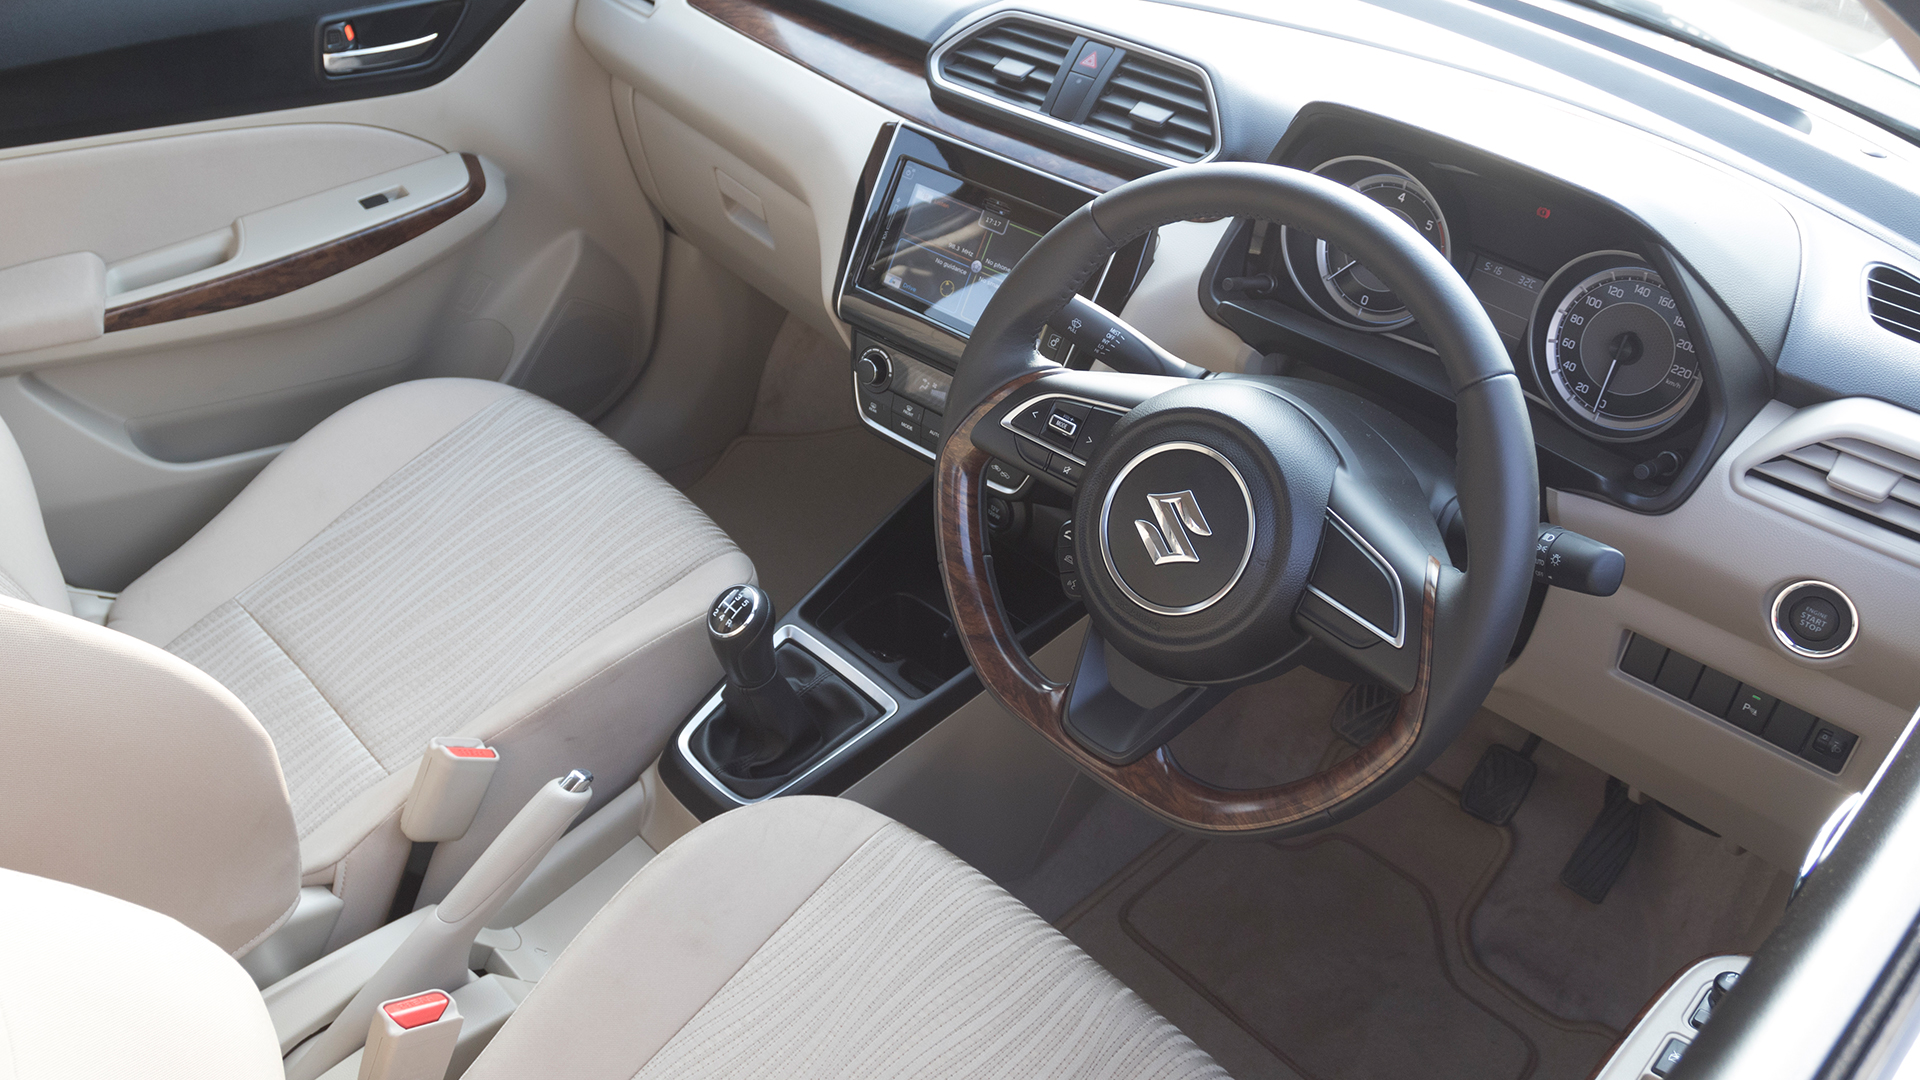 Used Car Valuation Calculator in 2018. Self Valuation of Maruti swift dzire vxi interior photos